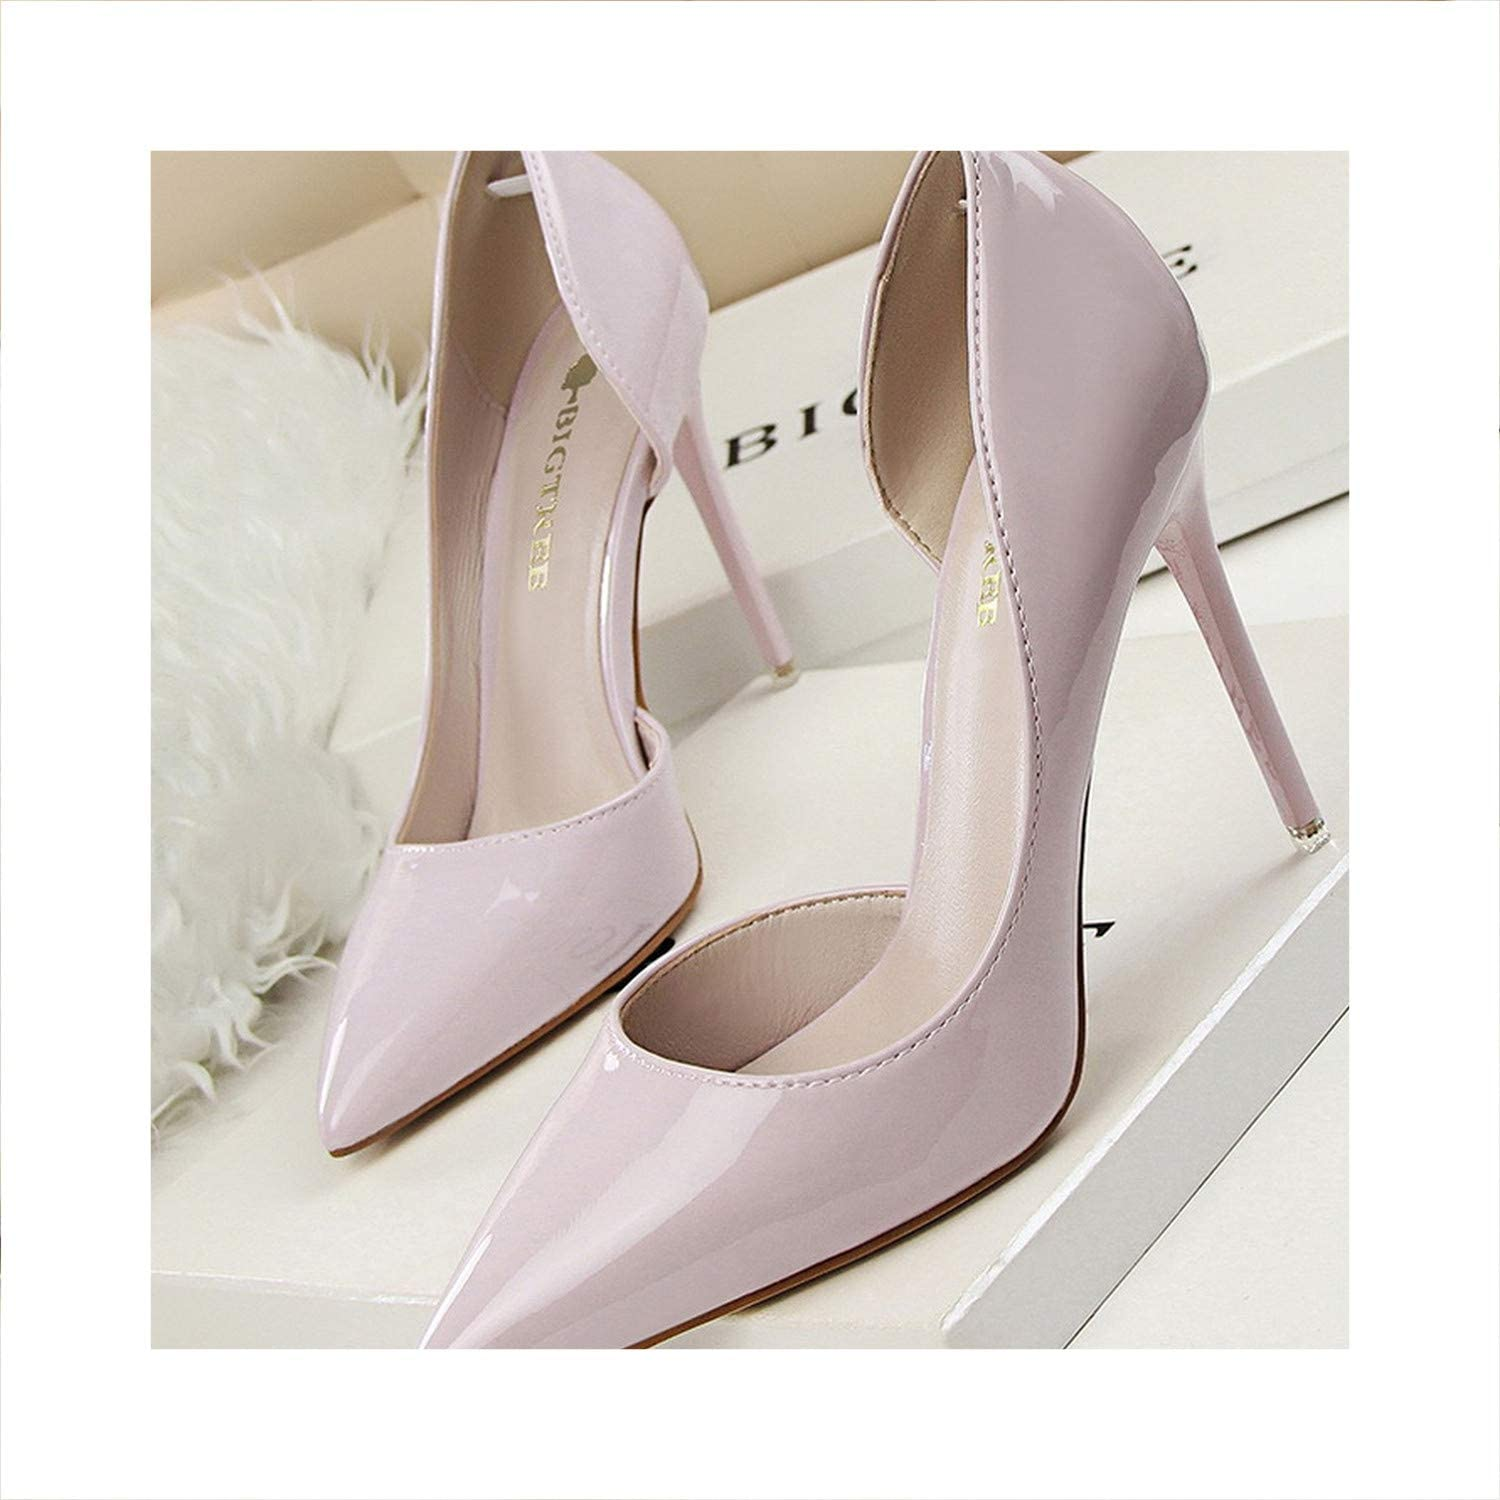 Women Pump Suede Basic Sandals Solid colors 2019 Slip On High Heels Sandals Femme Sexy Pumps